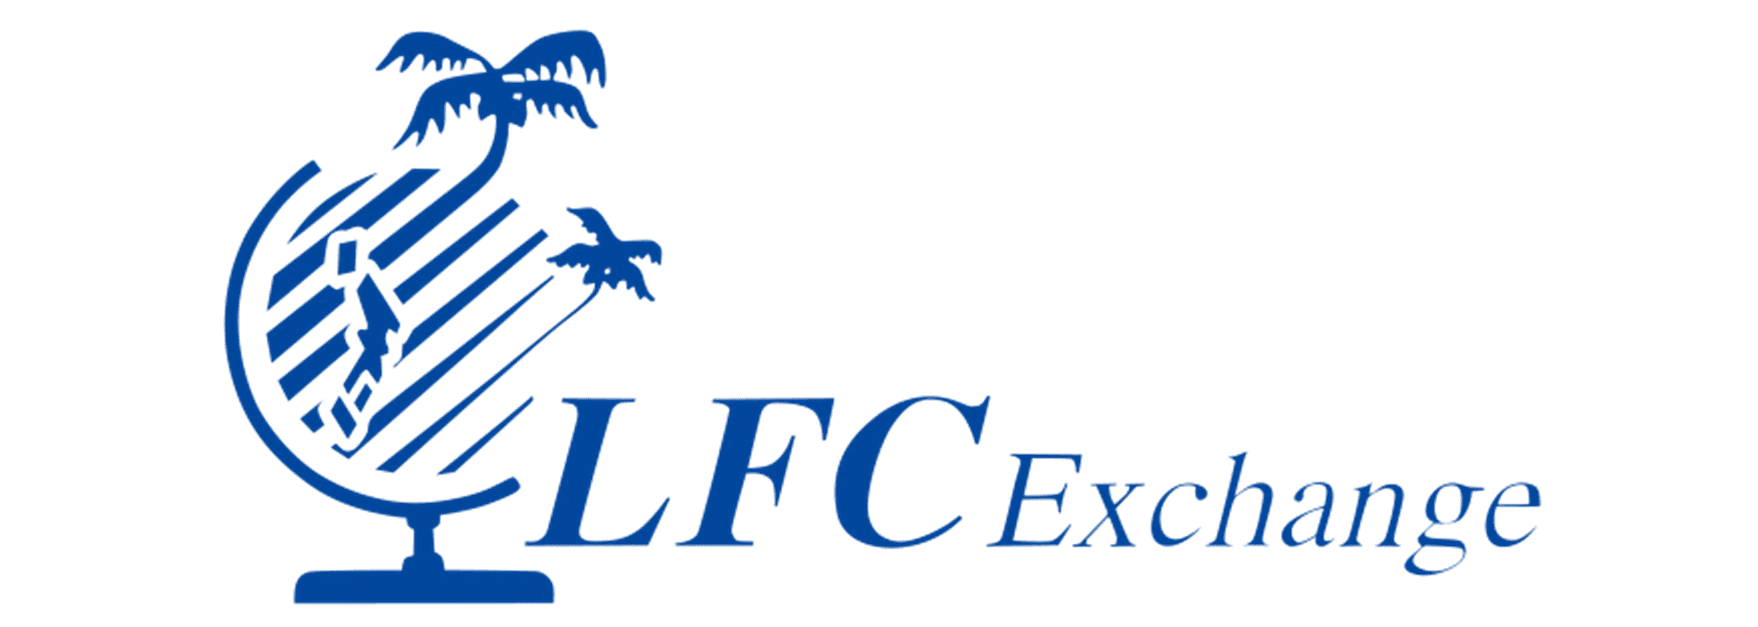 LFC Exchange,inc